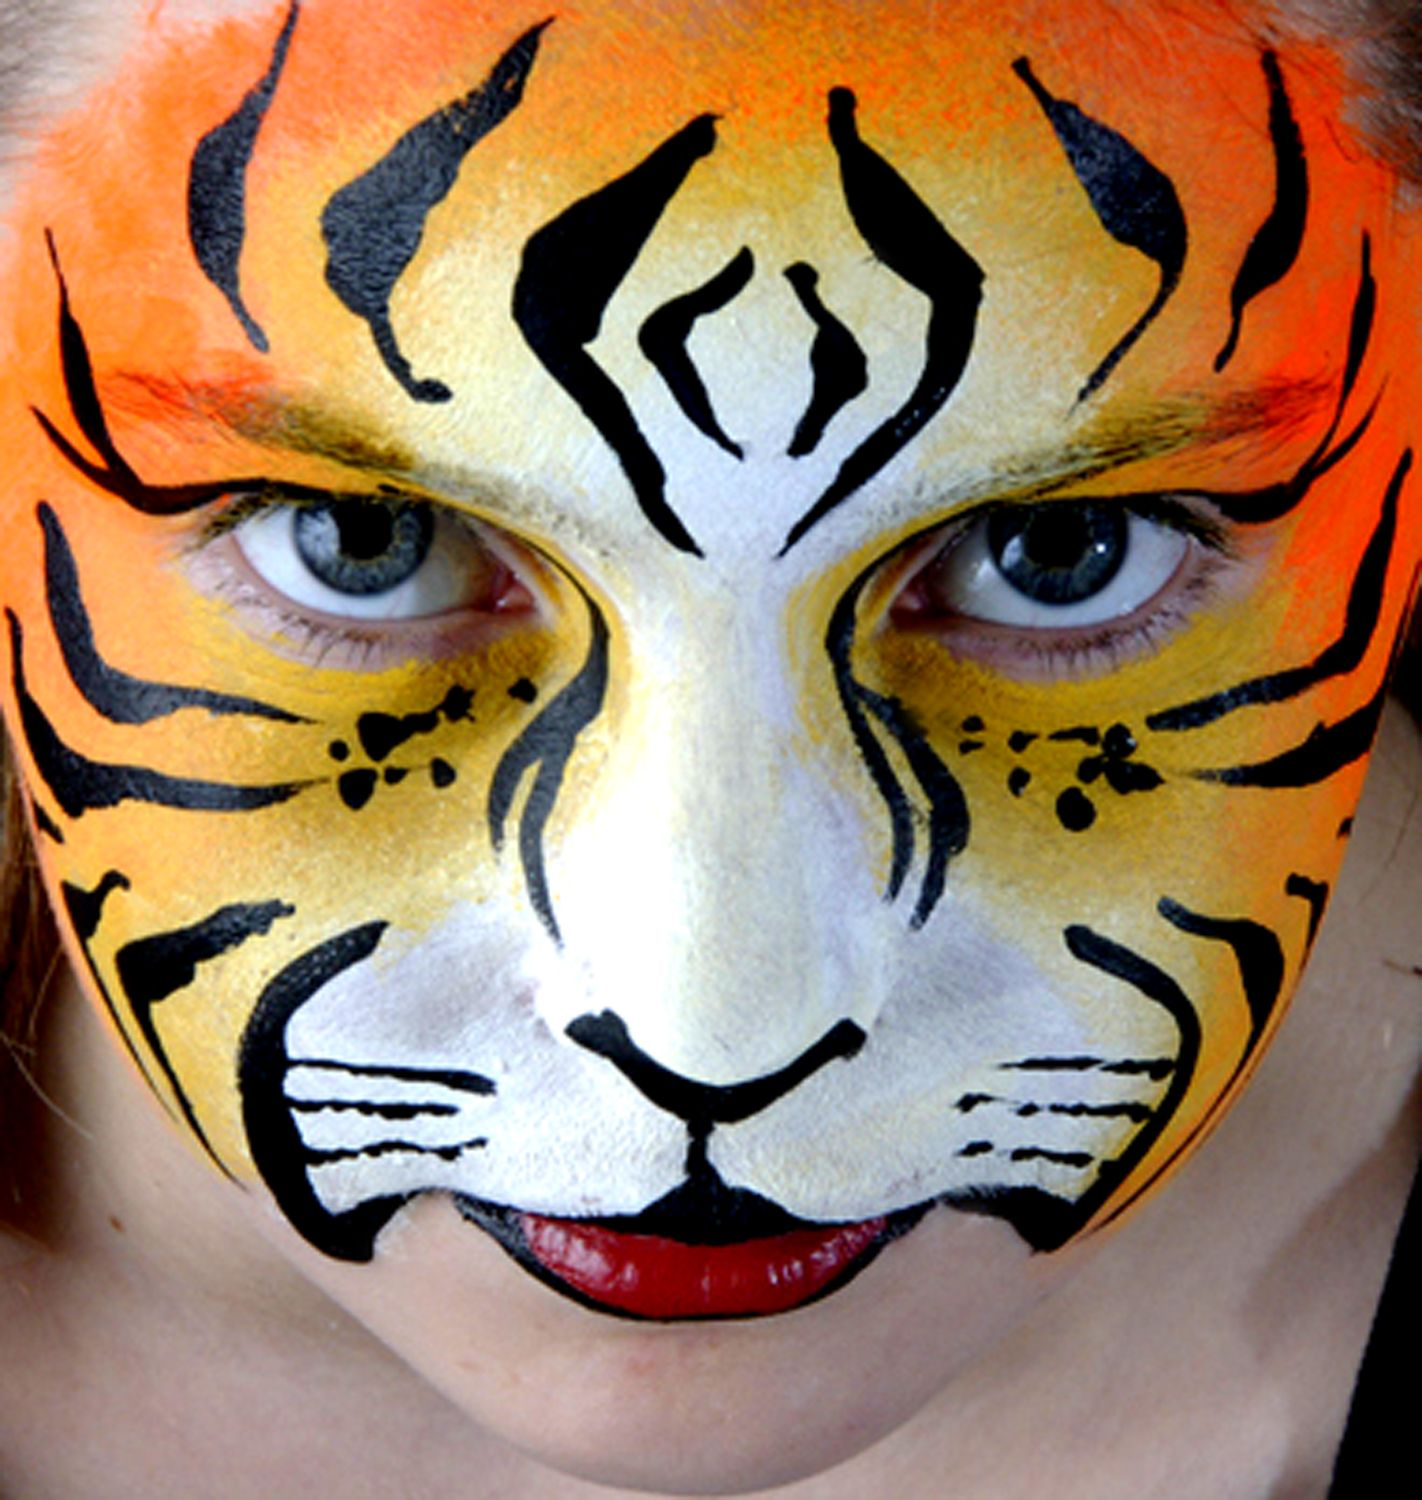 tiger face paint design images galleries with a bite. Black Bedroom Furniture Sets. Home Design Ideas